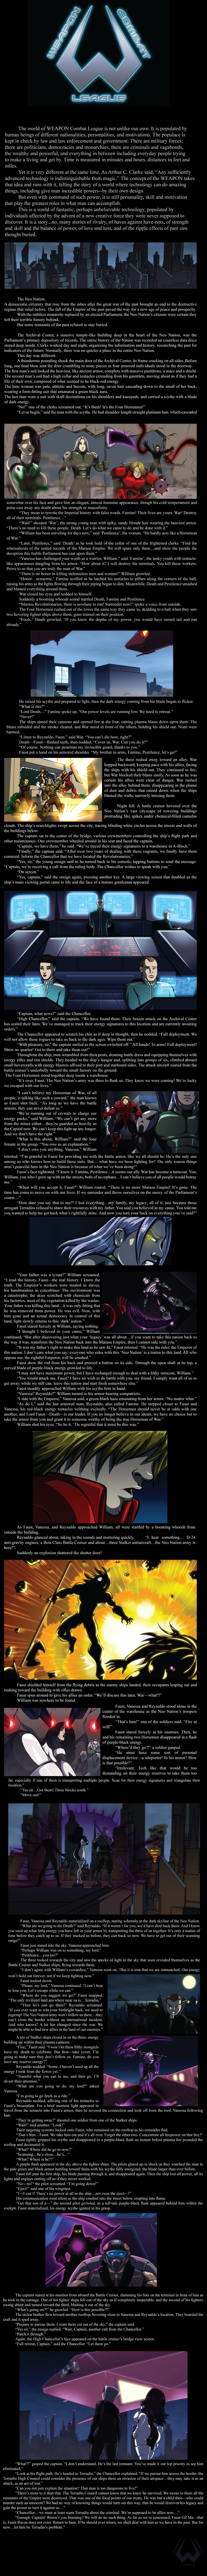 WCL: Discord in Darkness Illustrated by Dualmask